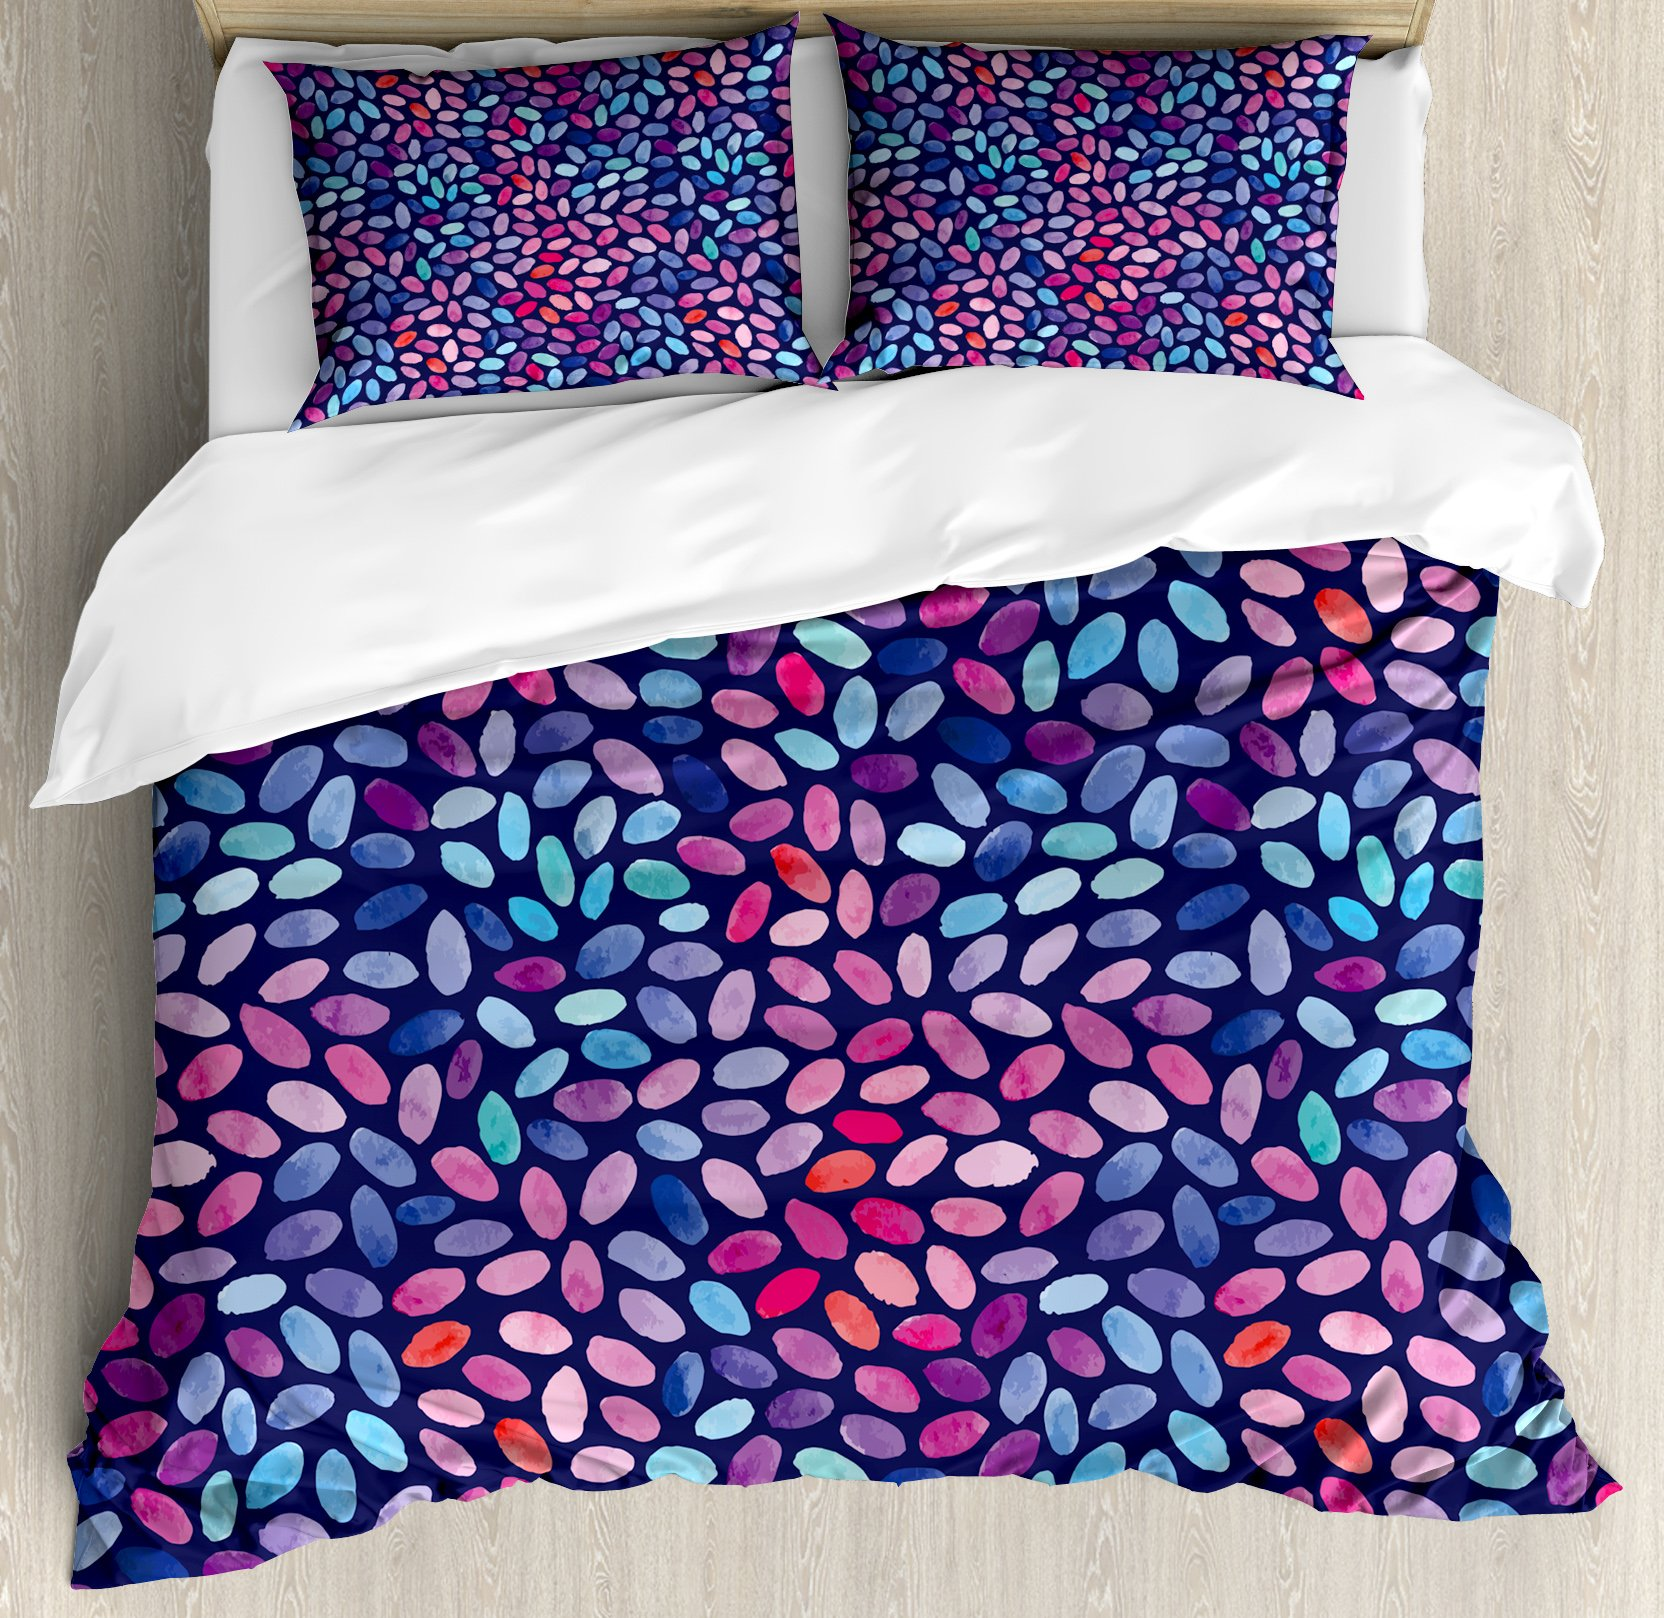 Ambesonne Grunge Duvet Cover Set King Size, Vibrant Watercolor Spots Oval Shapes Paintbrush Effect Abstract Artistic, Decorative 3 Piece Bedding Set with 2 Pillow Shams, Violet Blue Multicolor